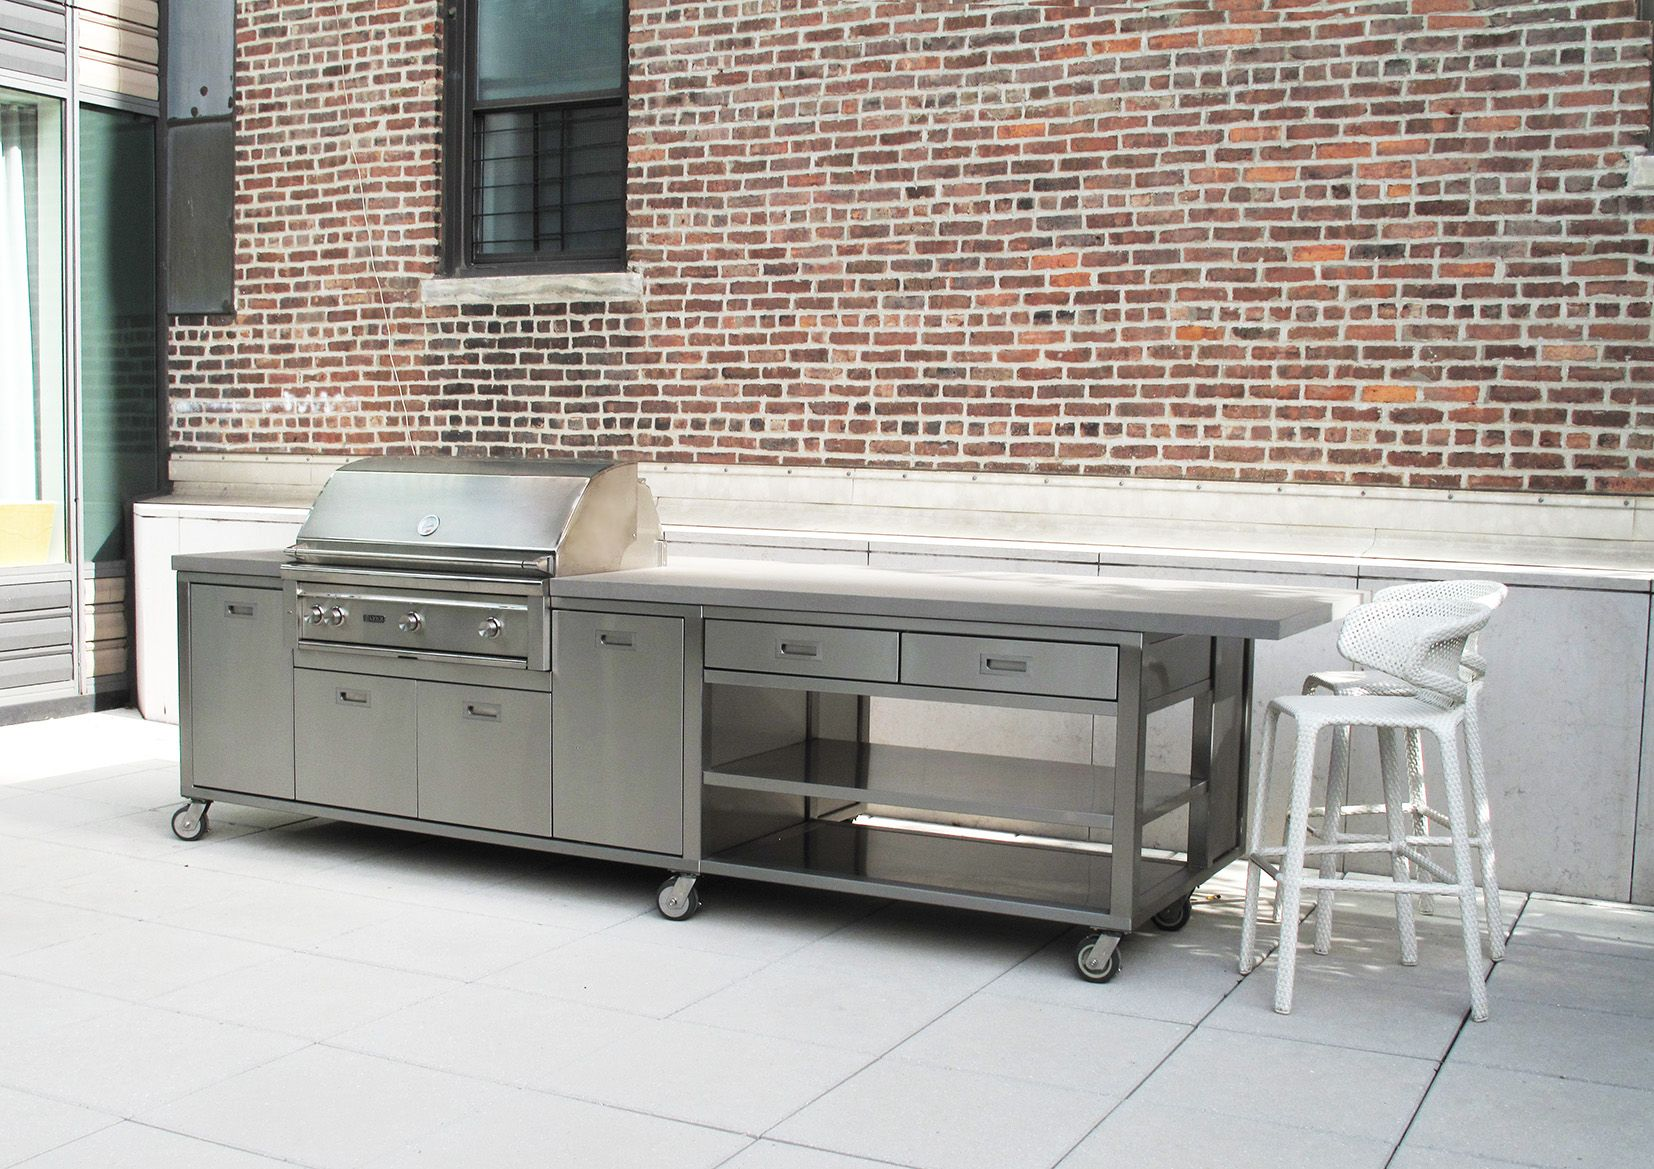 Outdoor Kitchen On Wheels Marine Grade Stainless Steel And Neolithe Countertops Perfect For Outdoor Conditions Kitchen Outdoor Kitchen Countertops